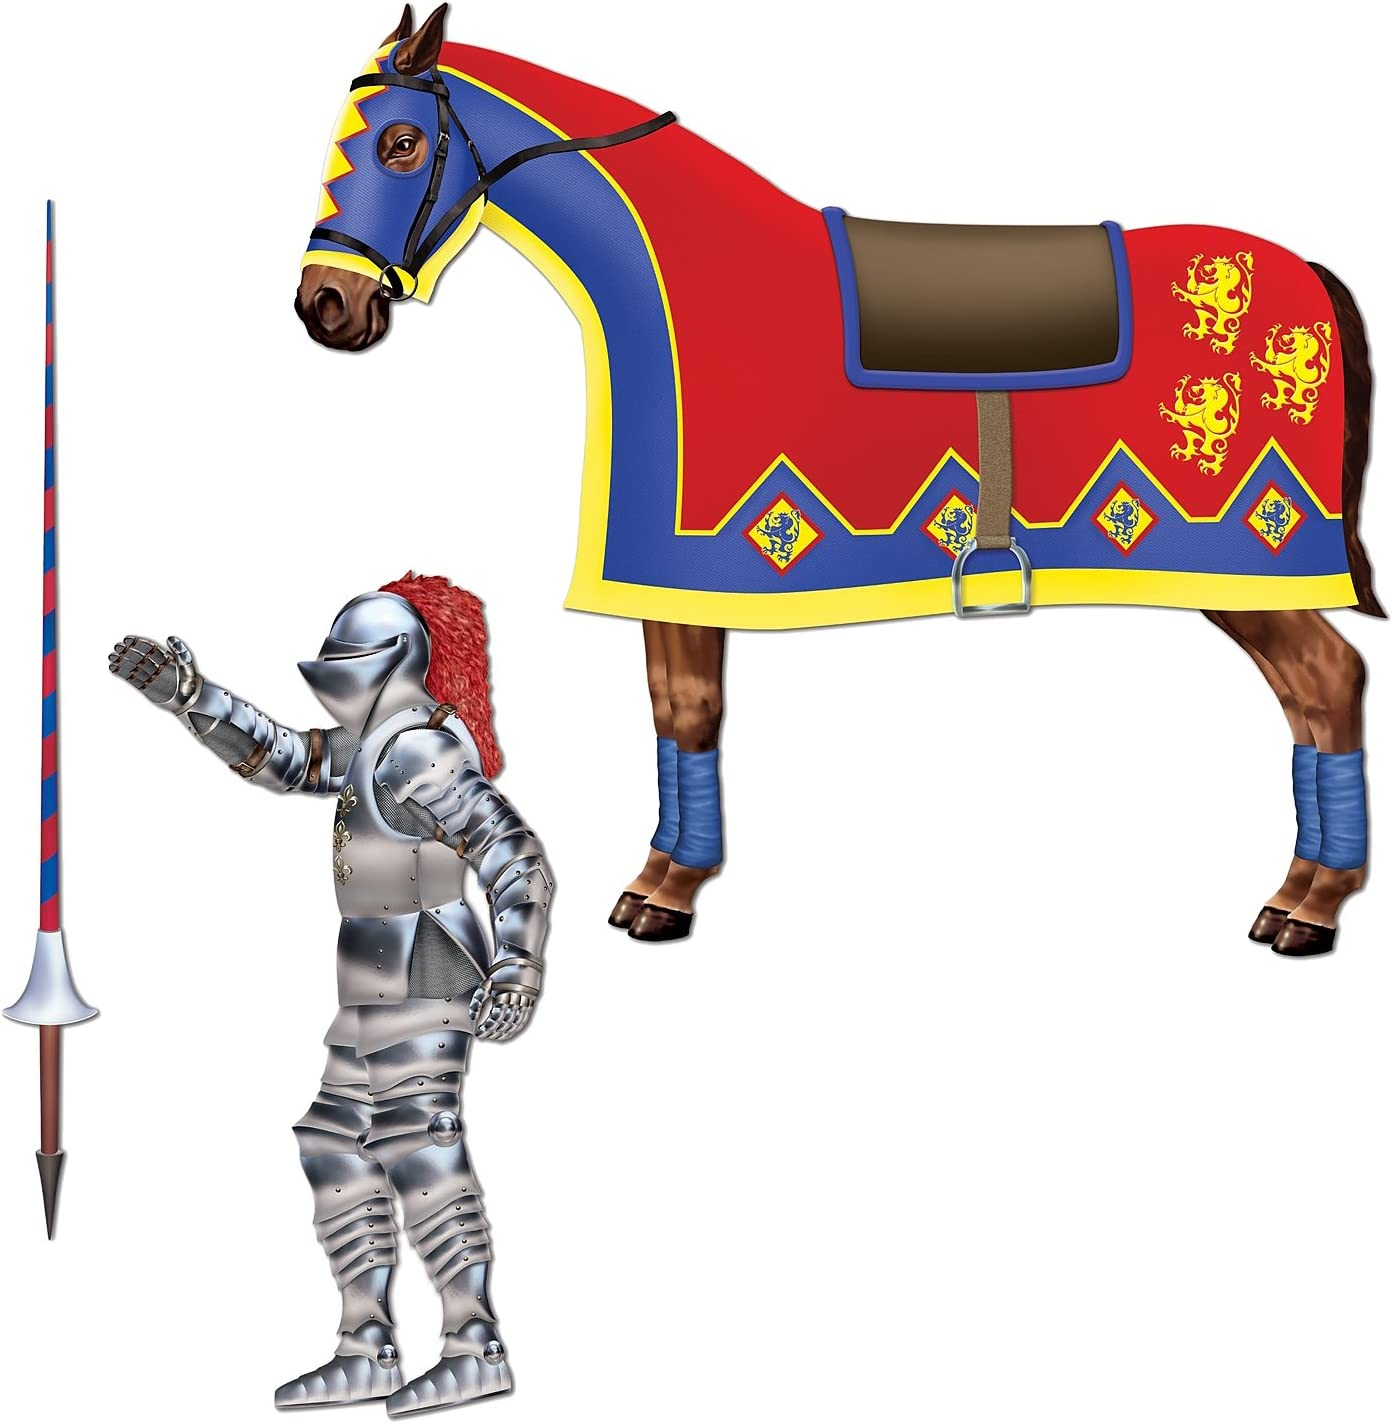 Inflatable Sword /& Shield Set Prop Toy Medieval Birthday Renaissance Party Event